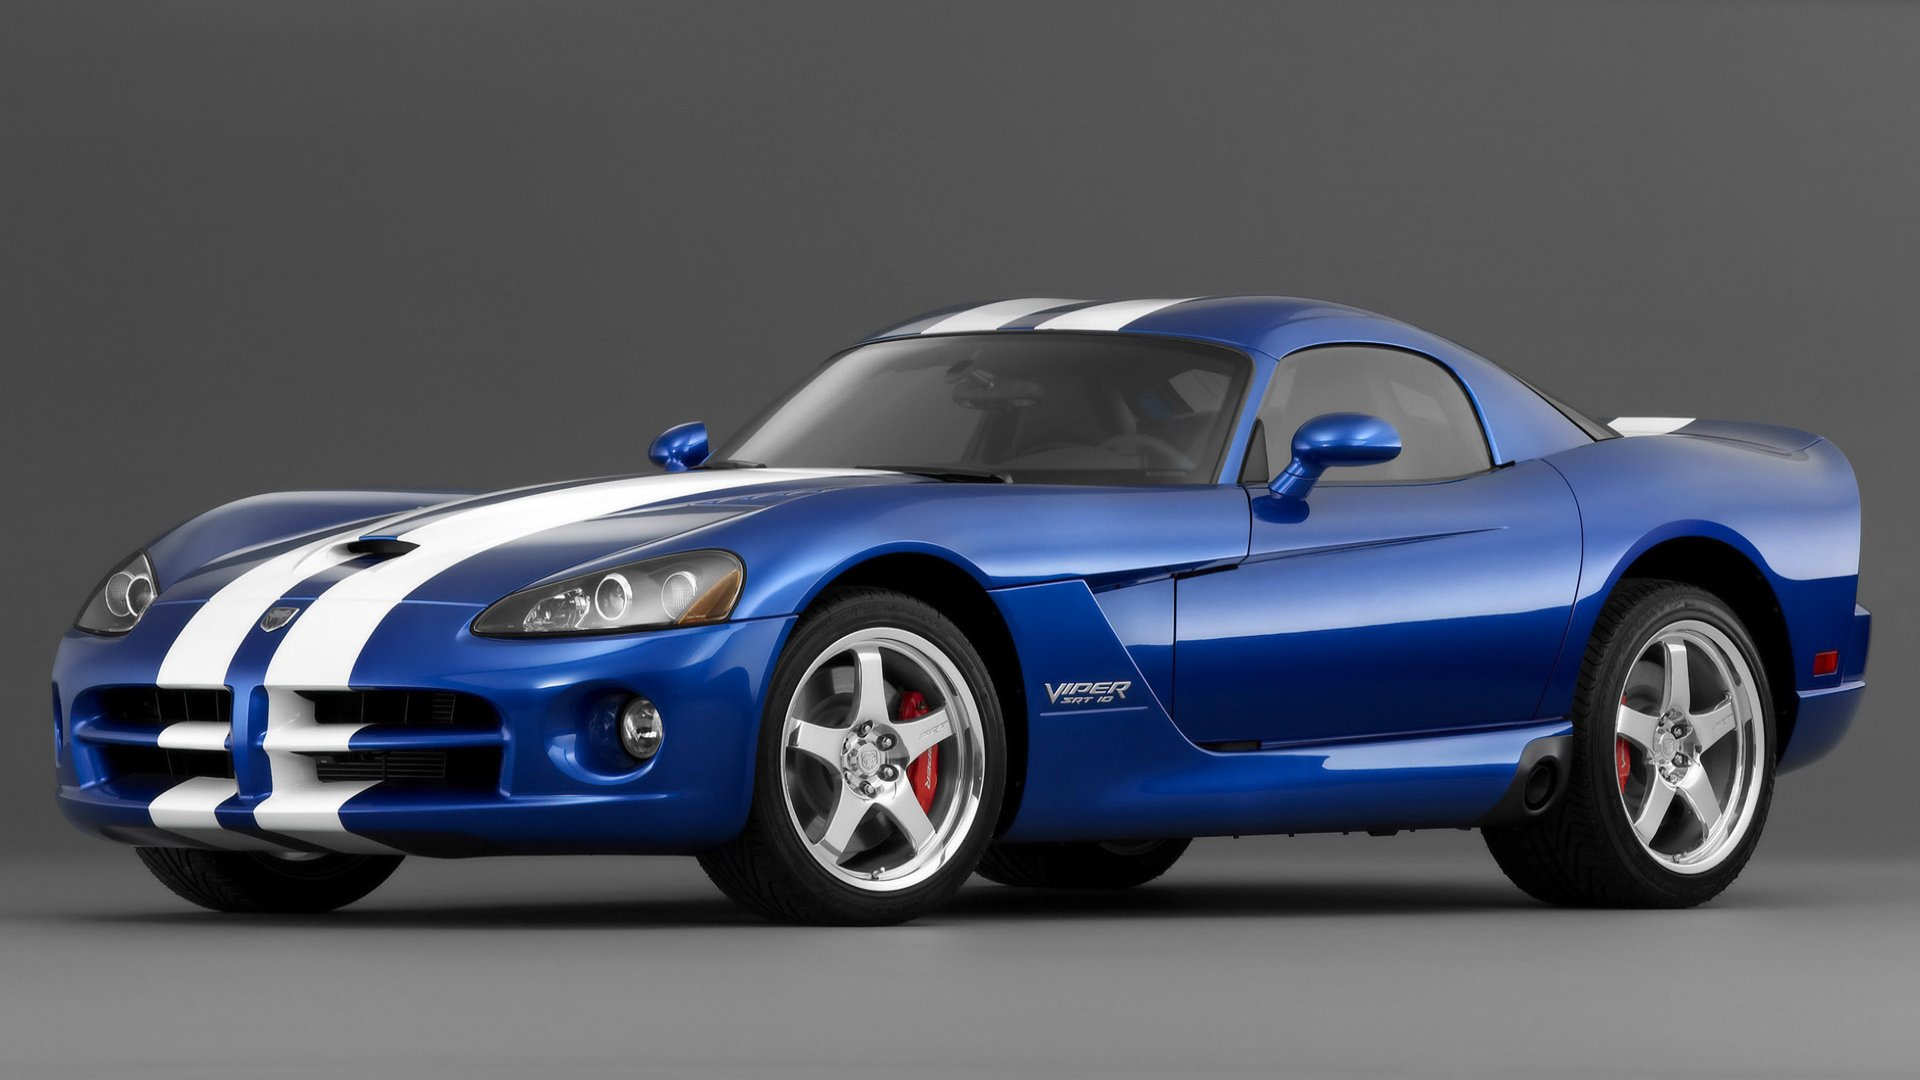 Car Wallpapers: Dodge Viper SRT 10